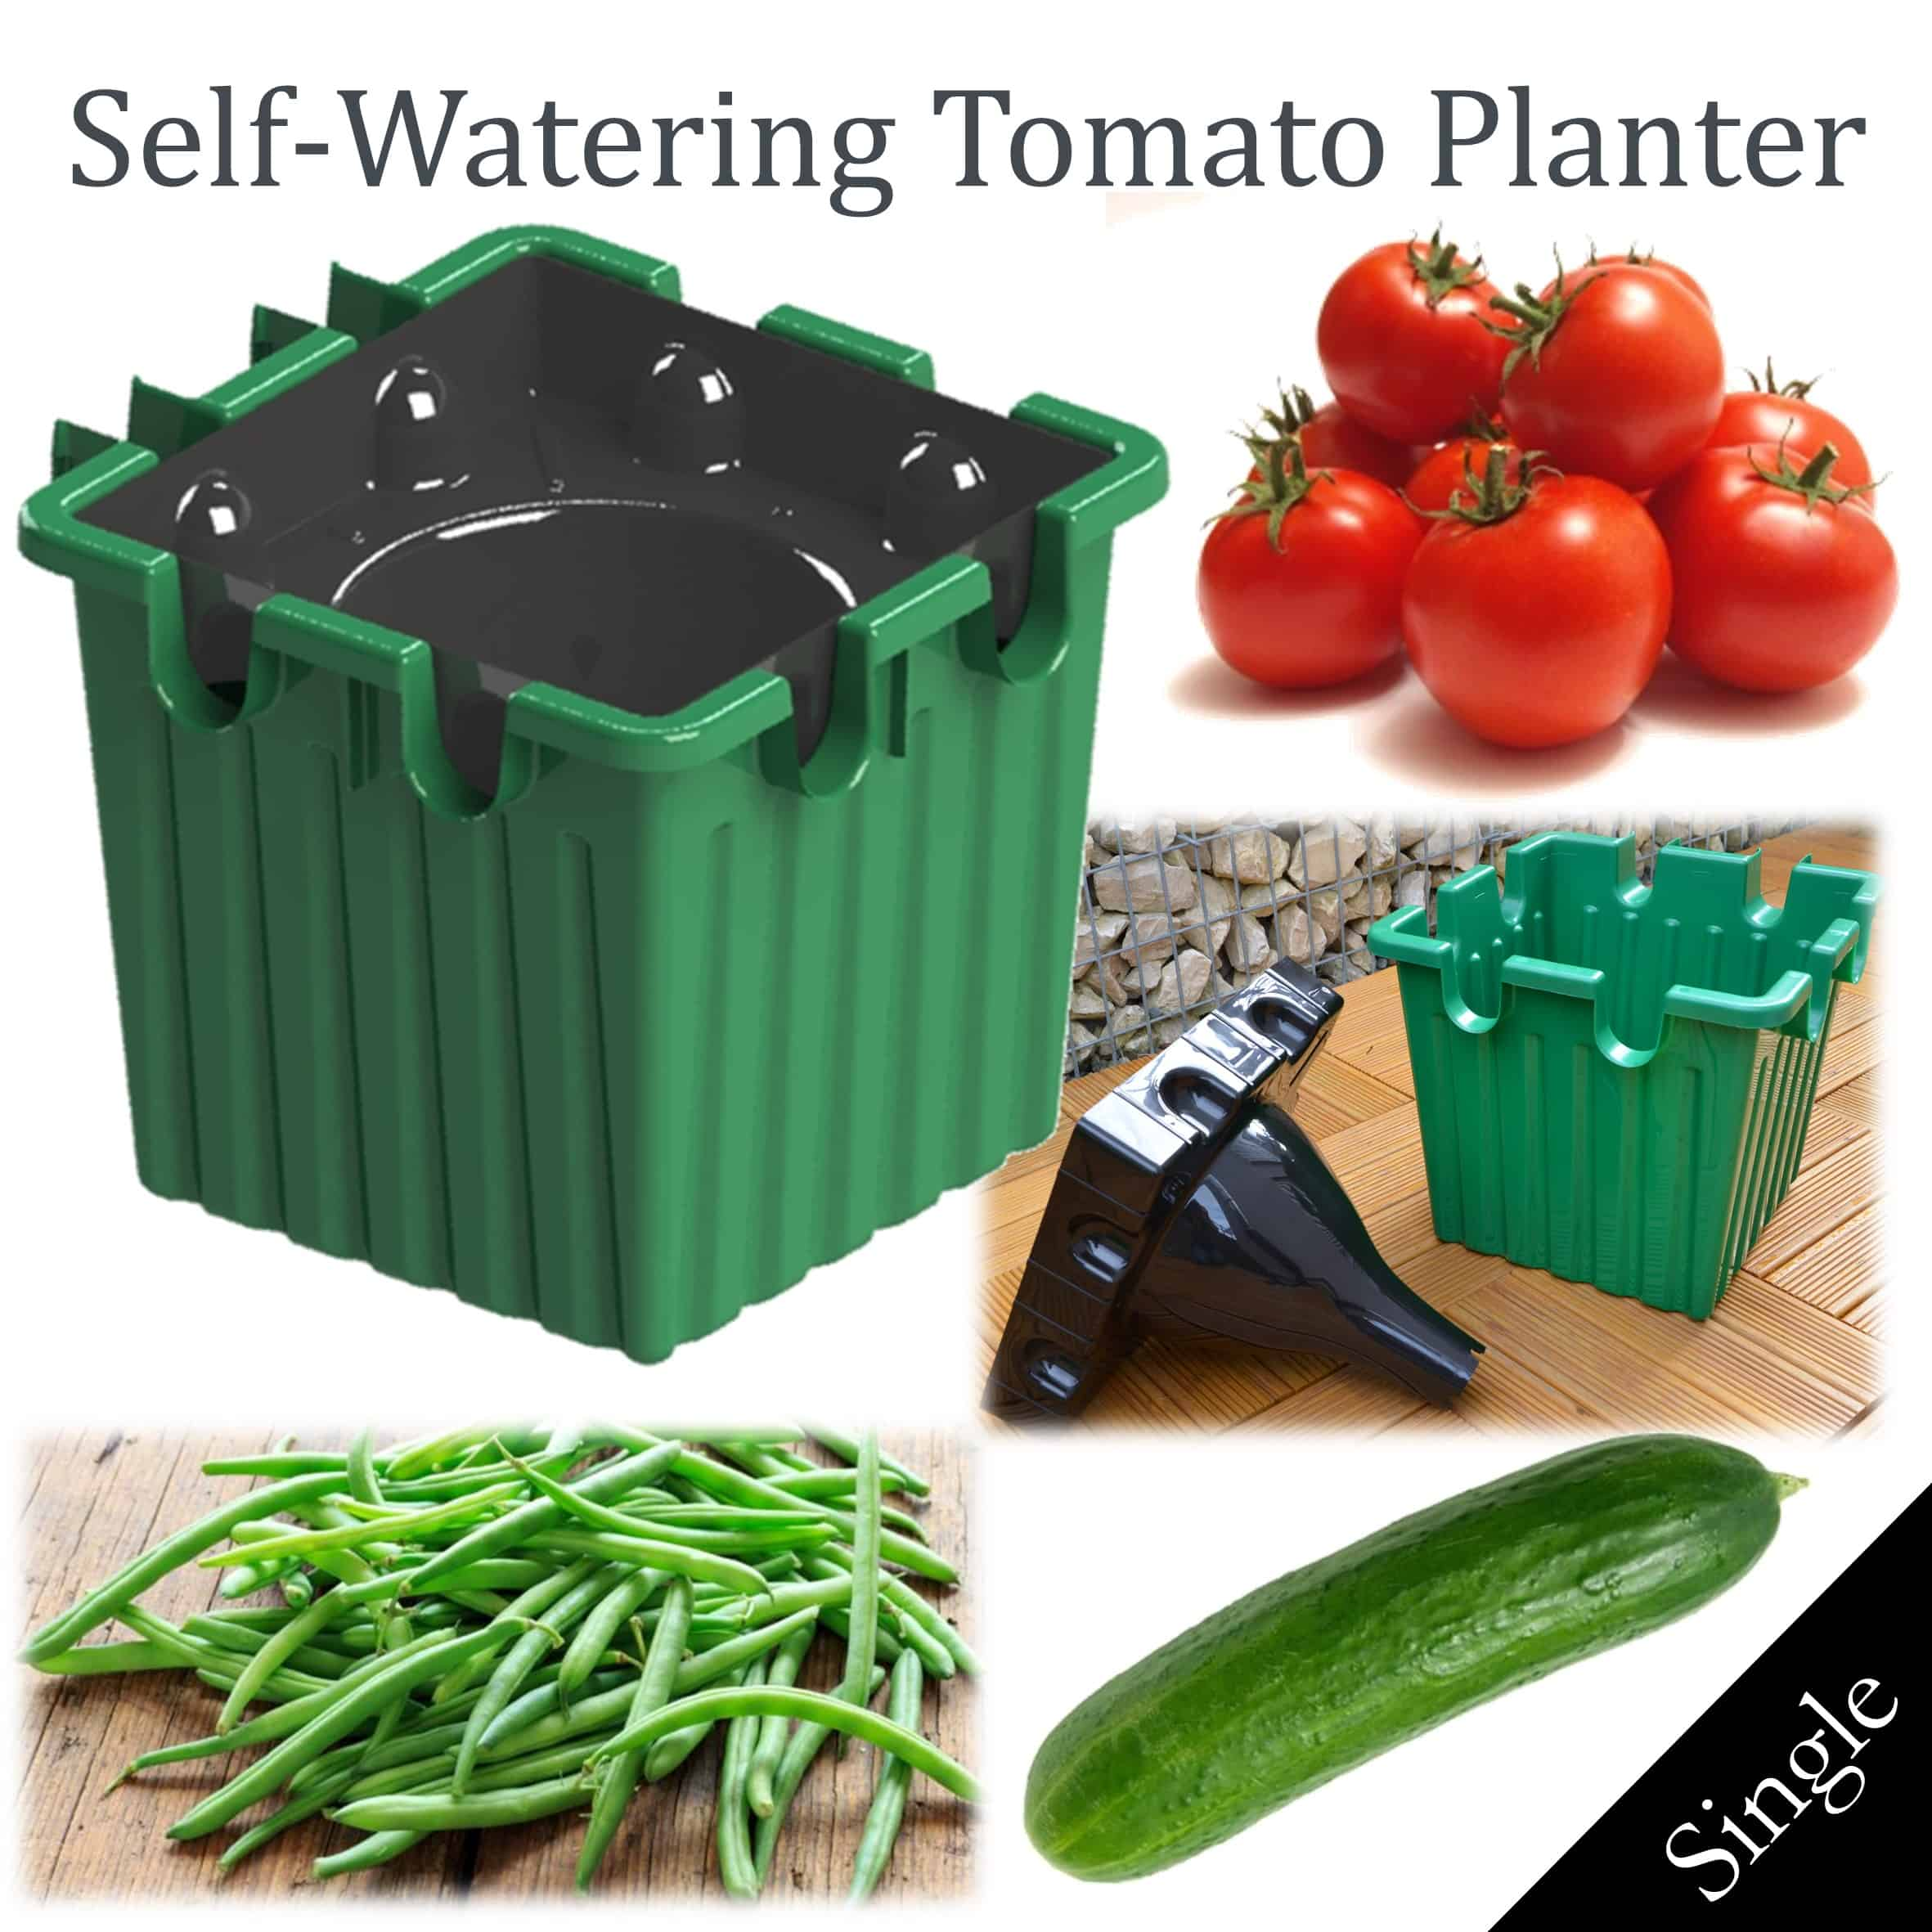 GREEN self-watering tomato planter